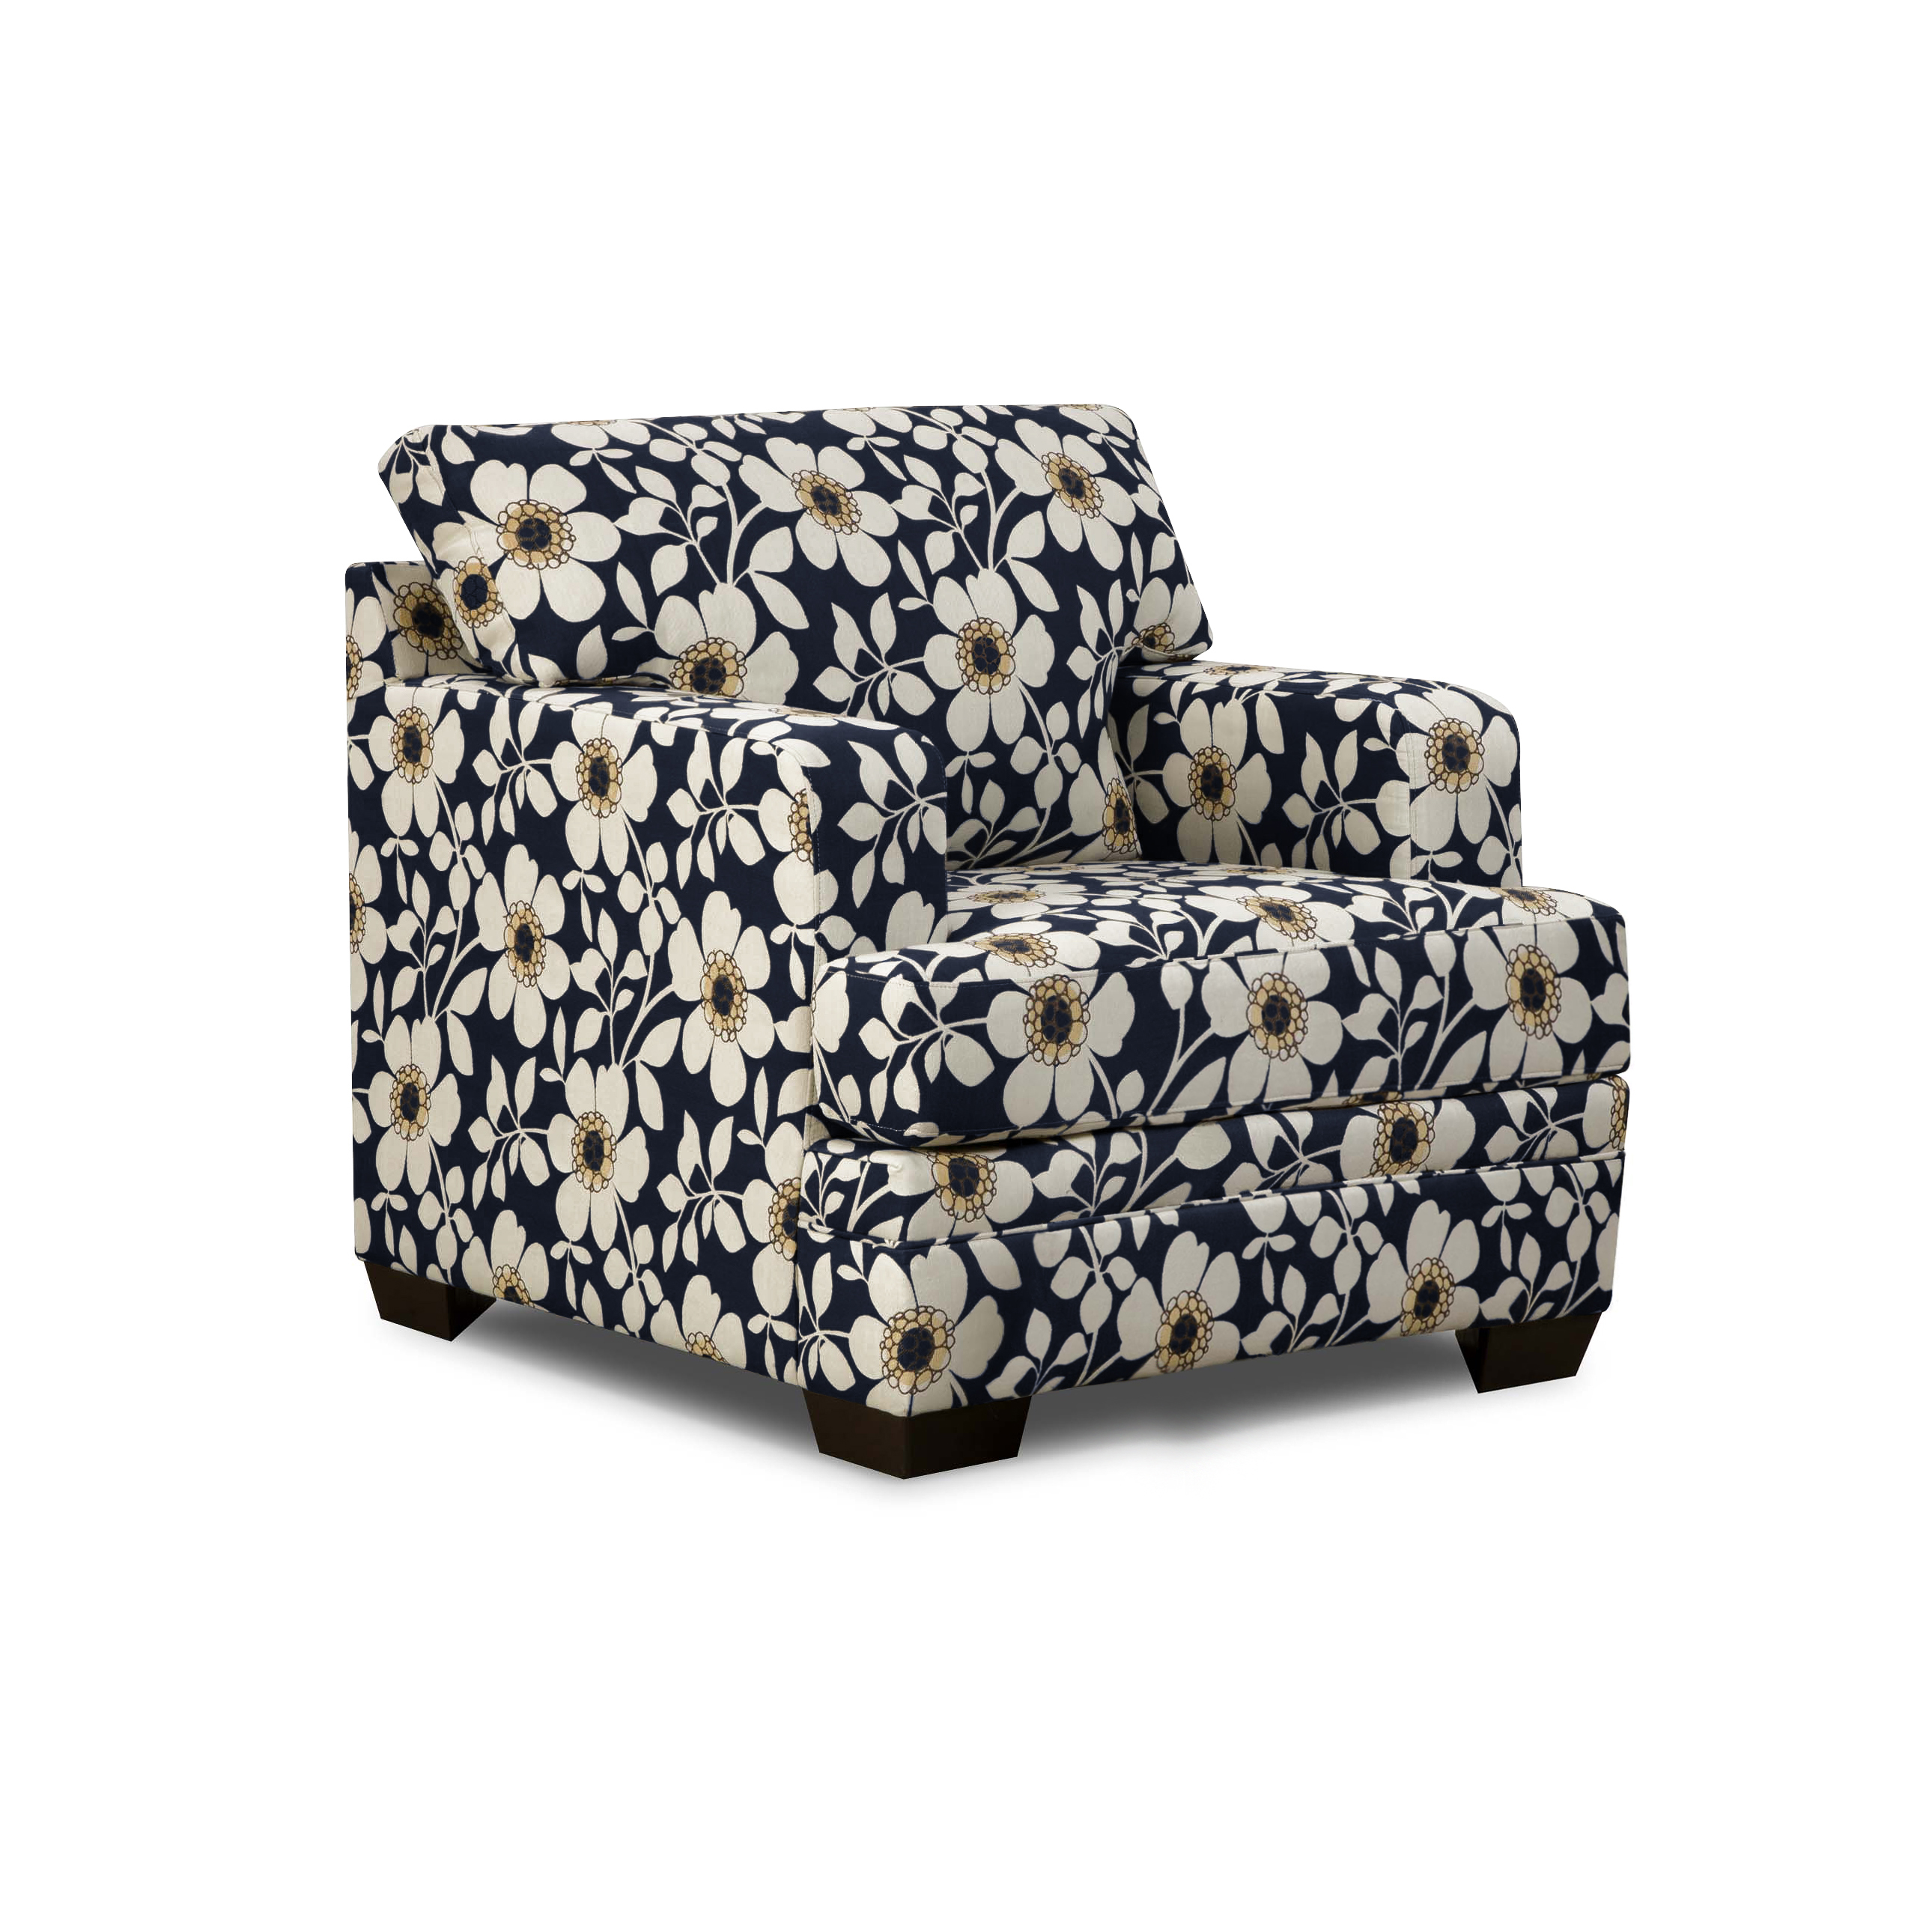 Sears Accent Chairs Check Out Simmons Chicklet Accent Chair Indigo Floral Shopyourway